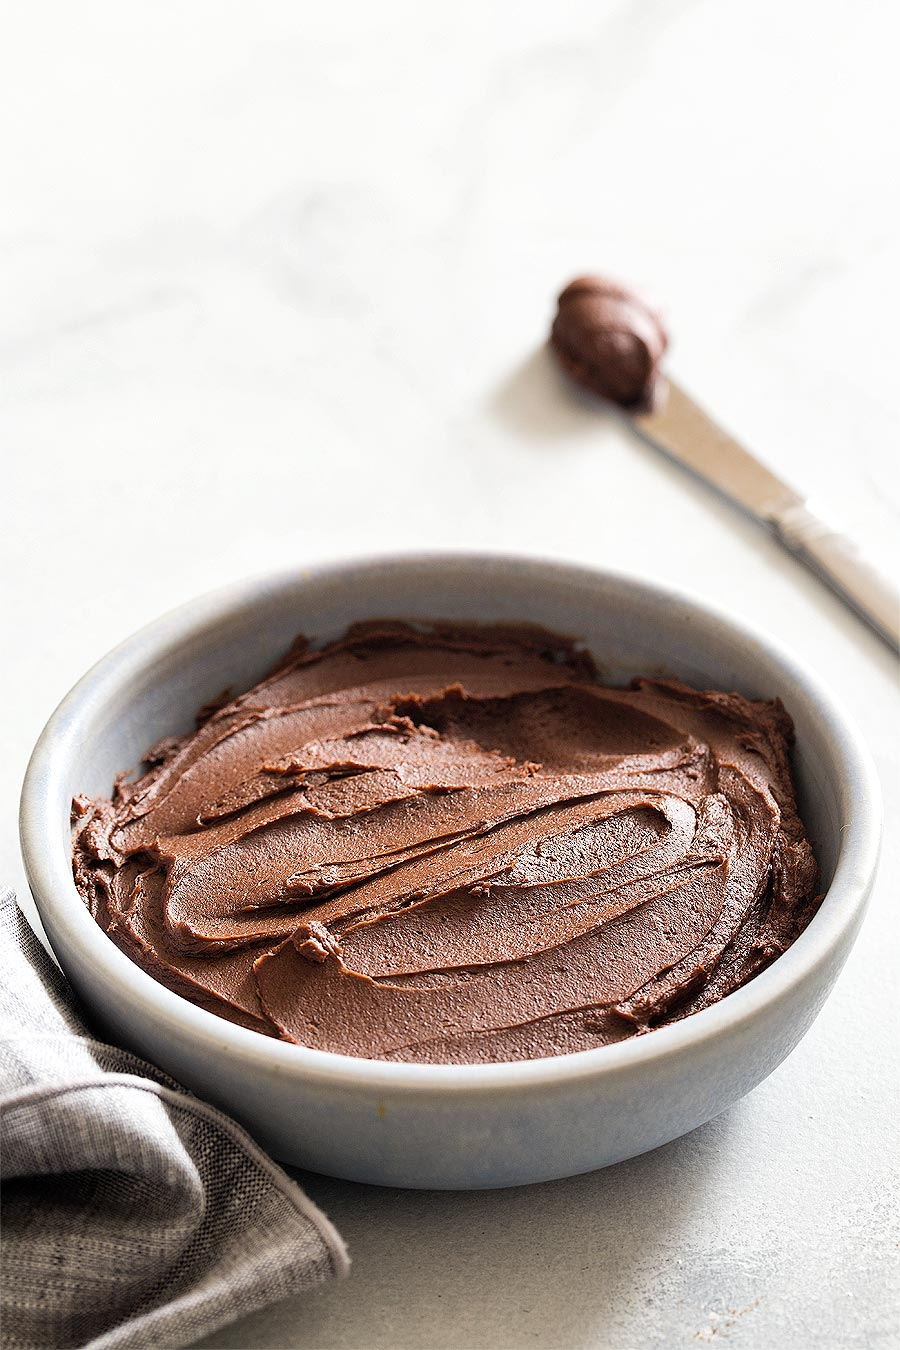 Chocolate Frosting by Carla Cardello Food Photographer